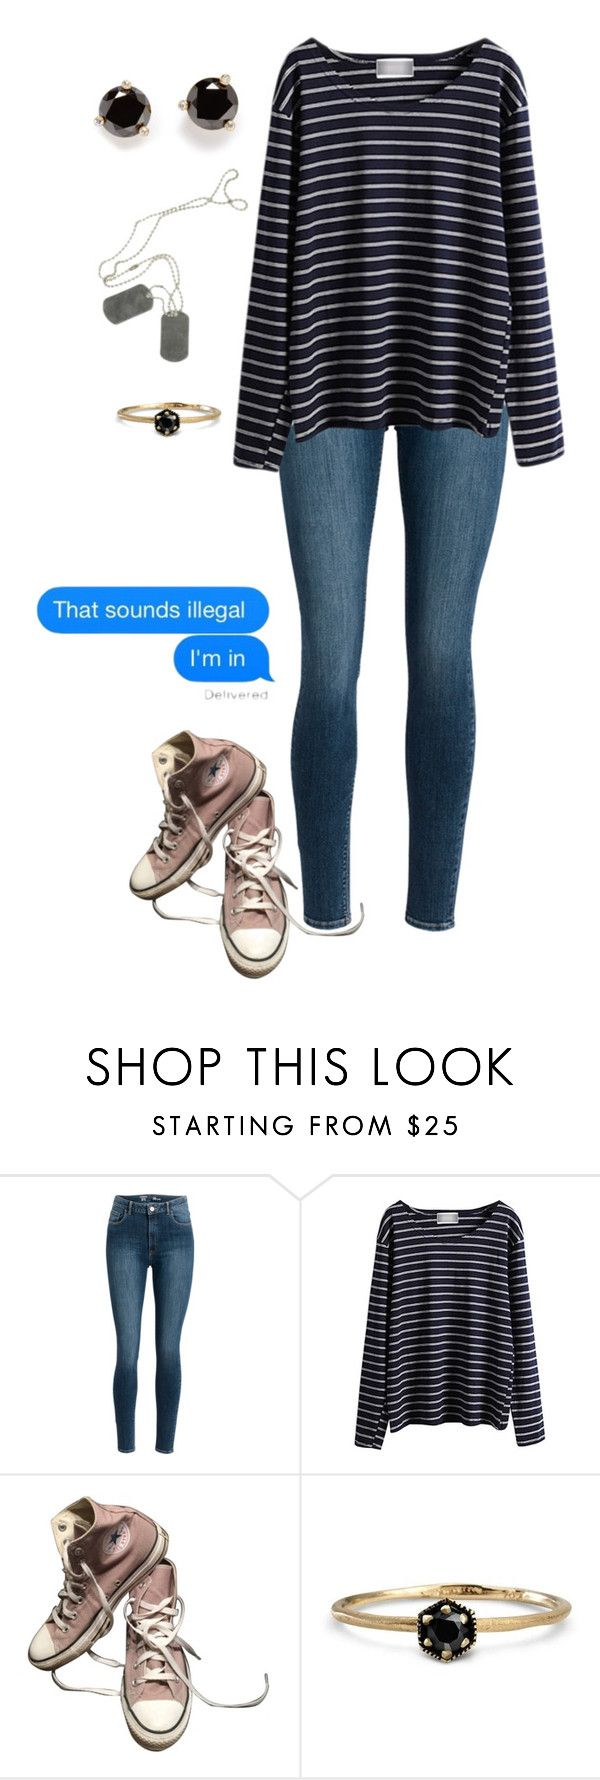 """That sounds illegal"" by dreams-of-a-samurai ❤ liked on Polyvore featuring WithChic, Converse, Satomi Kawakita and Kate Spade"